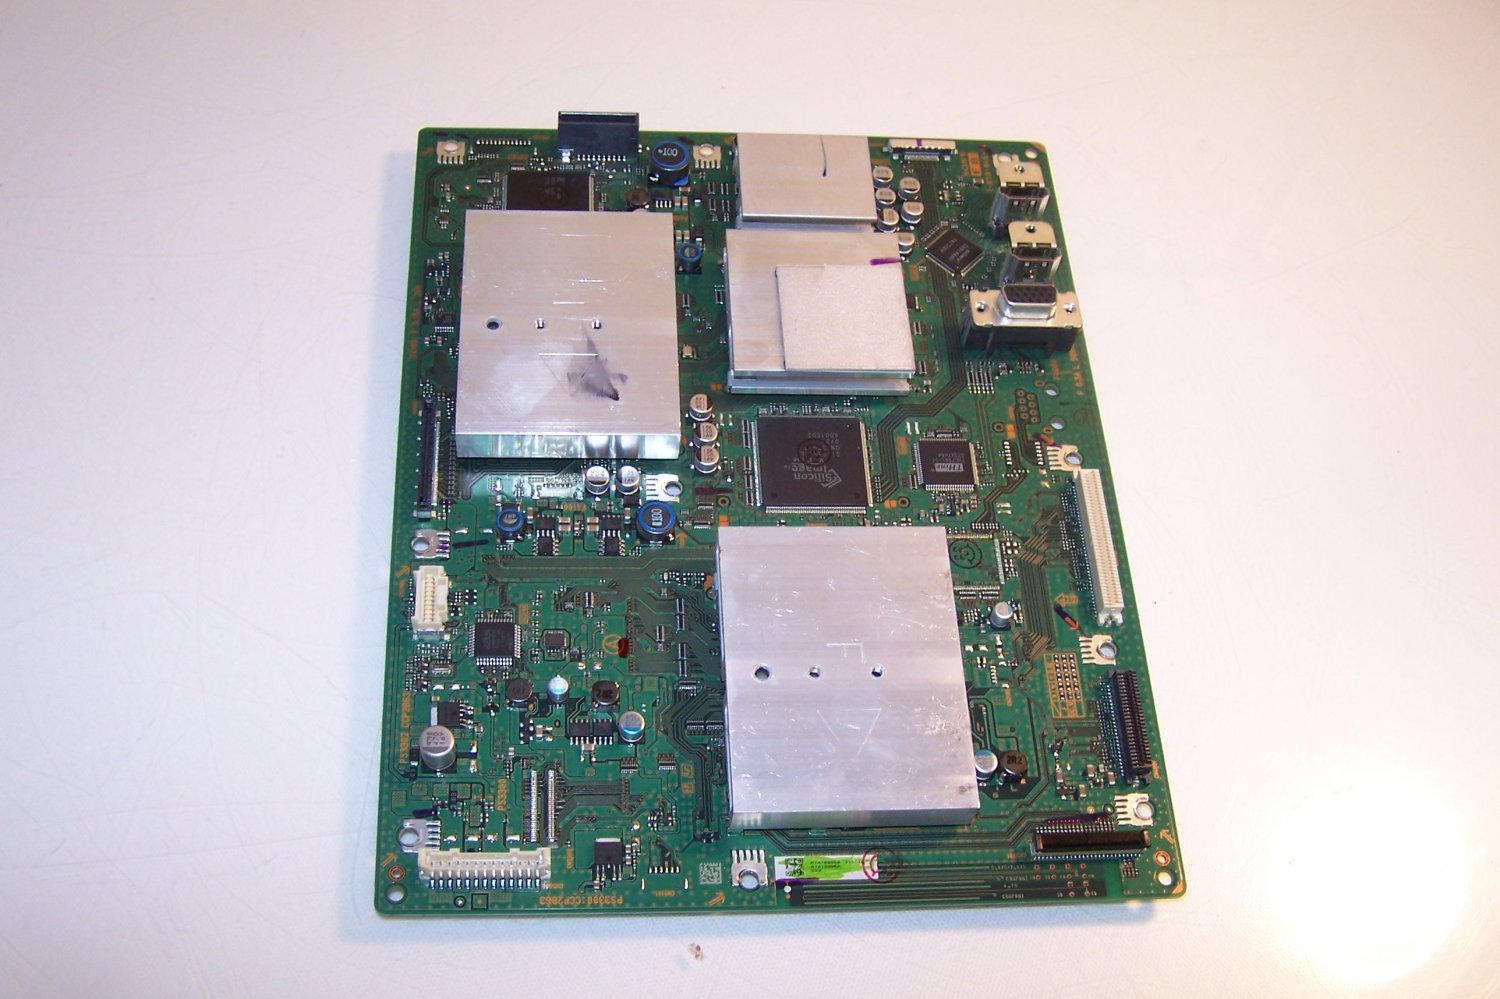 Sony A-1418-997-A 1-873-846-14, 1-873-846-15 FB1 Board